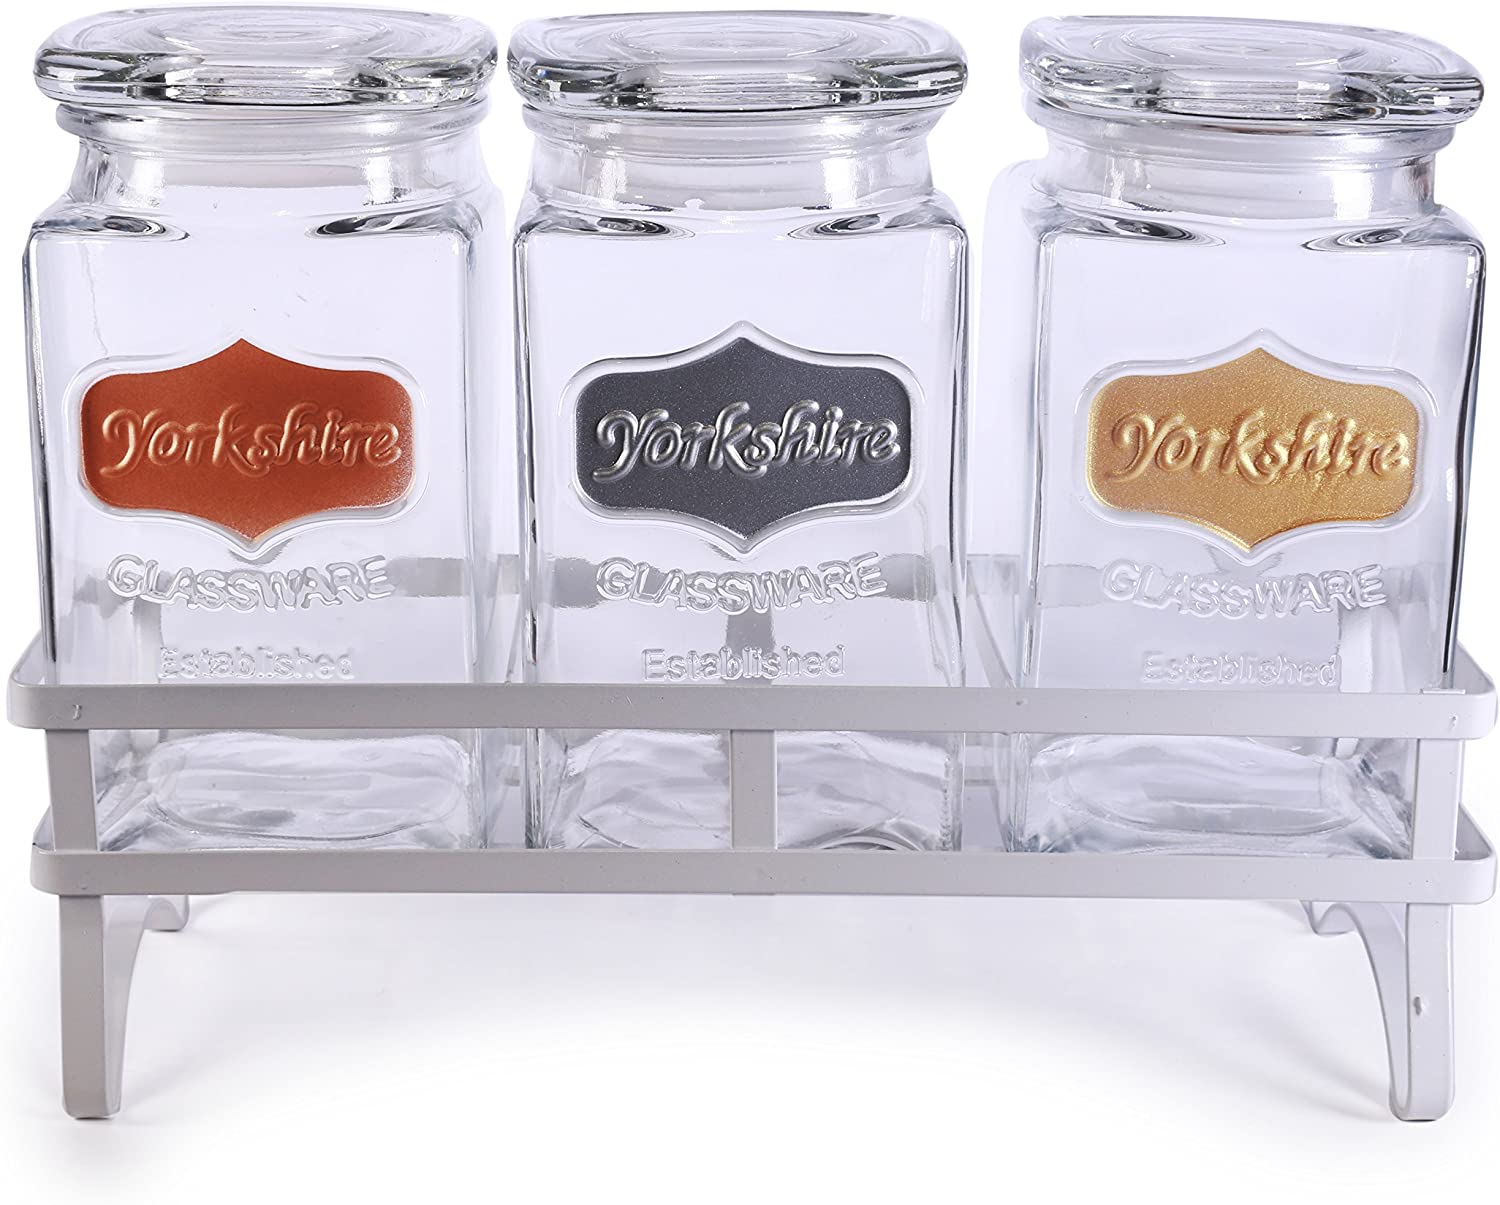 Circleware Yorkshire Canister Jar with Glass Lid Metallic Panel & White Stand, Set of 3 Kitchen Glassware Food Preserving for Coffee Sugar, Tea, Spices, Cereal, 42 oz, Gold, Copper, Silver